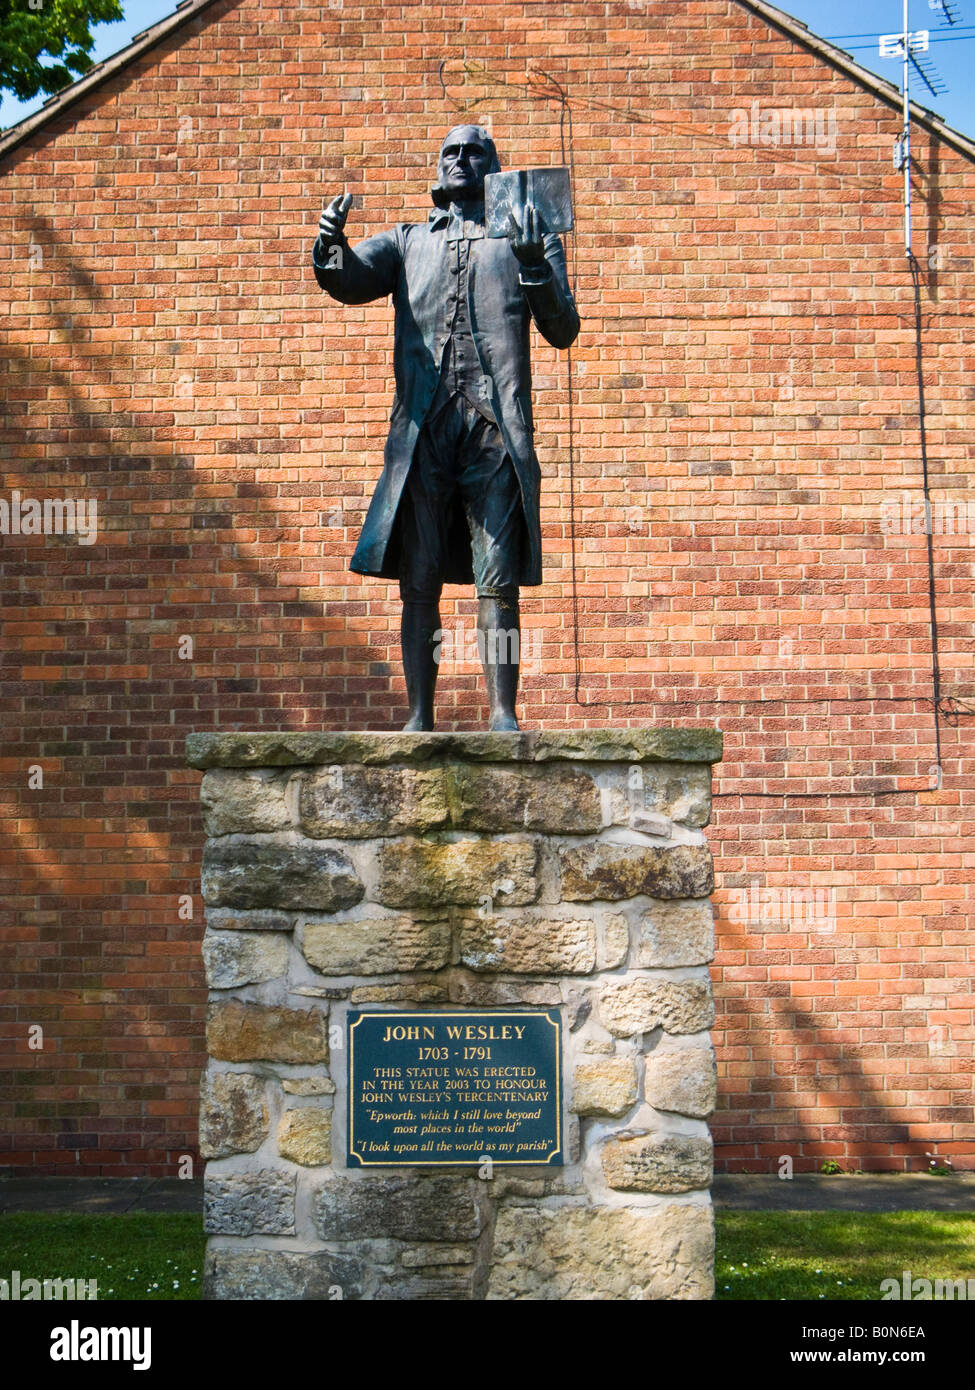 Statue of John Wesley at Epworth North Lincolnshire UK founder of Methodism - Stock Image